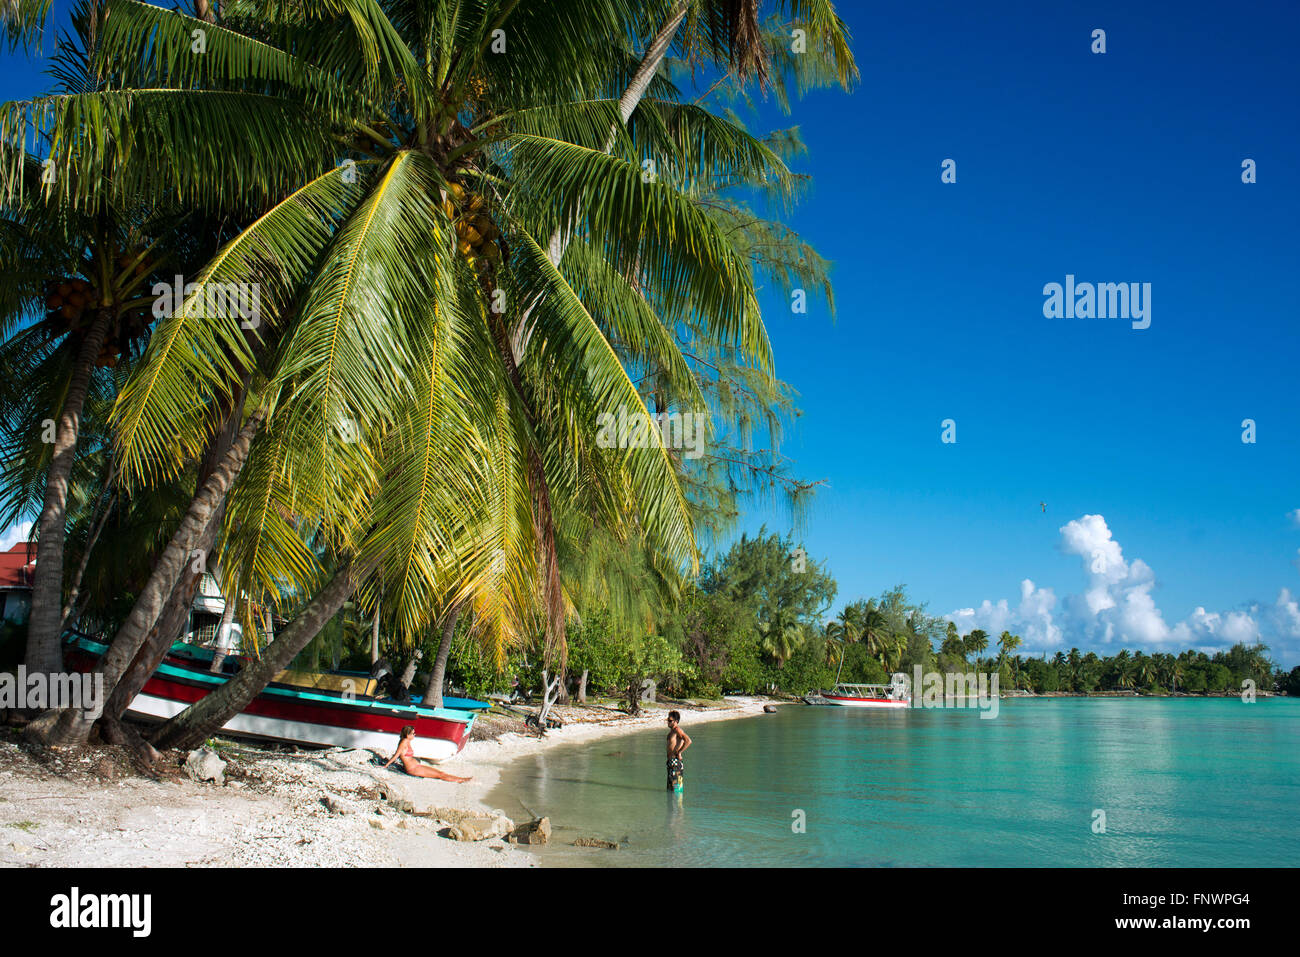 A couple relaxes in the beach of Rangiroa, Tuamotu Islands, French Polynesia, South Pacific. - Stock Image